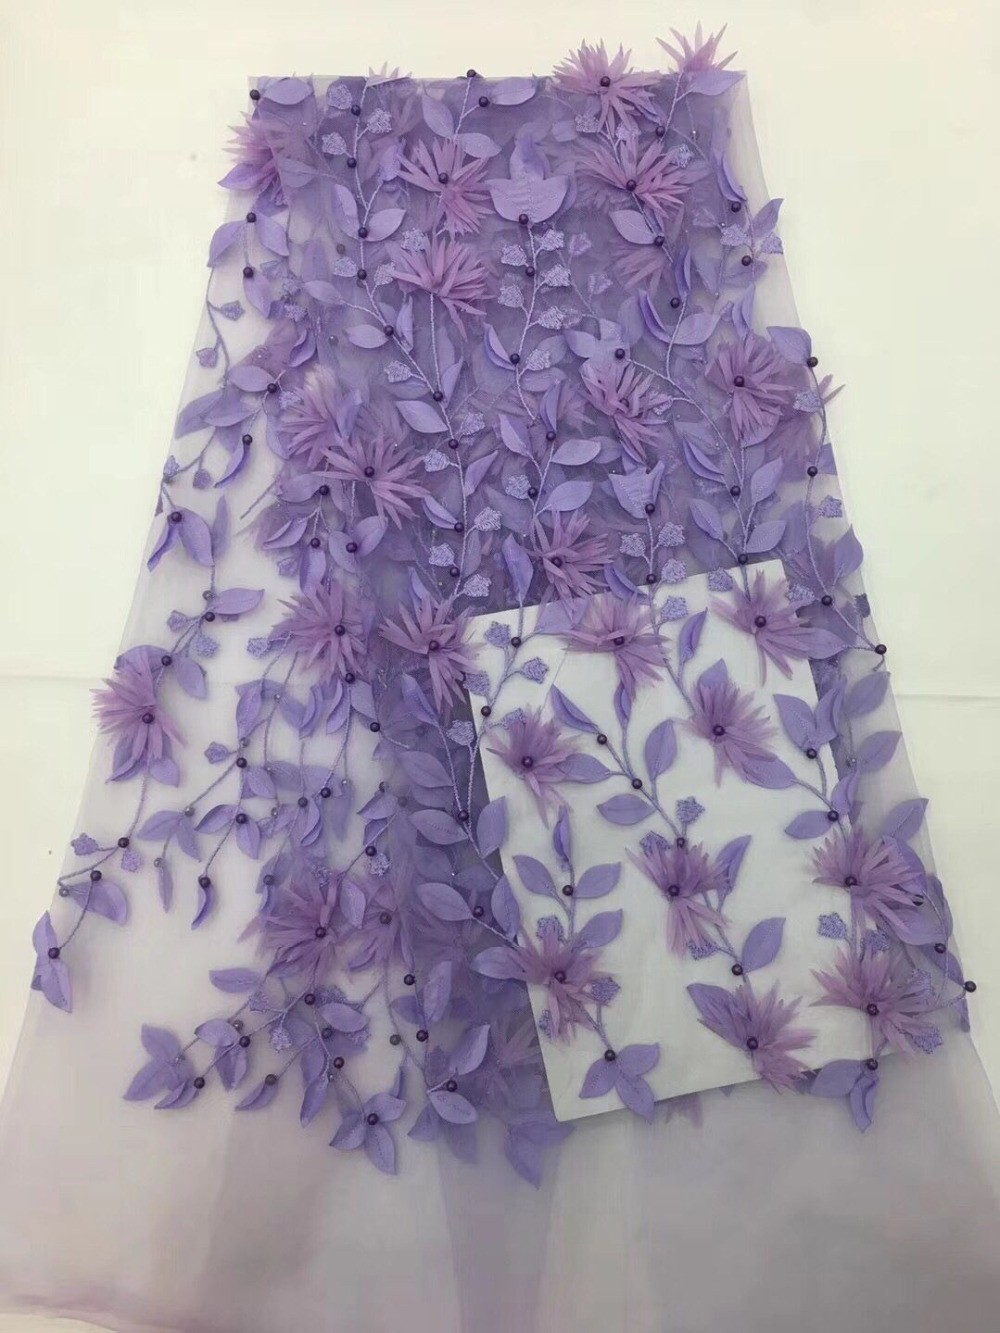 bead Indian Lace Fabric 2018 purple Nigeria Voile Net Tulle Guipure Lace African Women Evening Dress Sequins Fabric